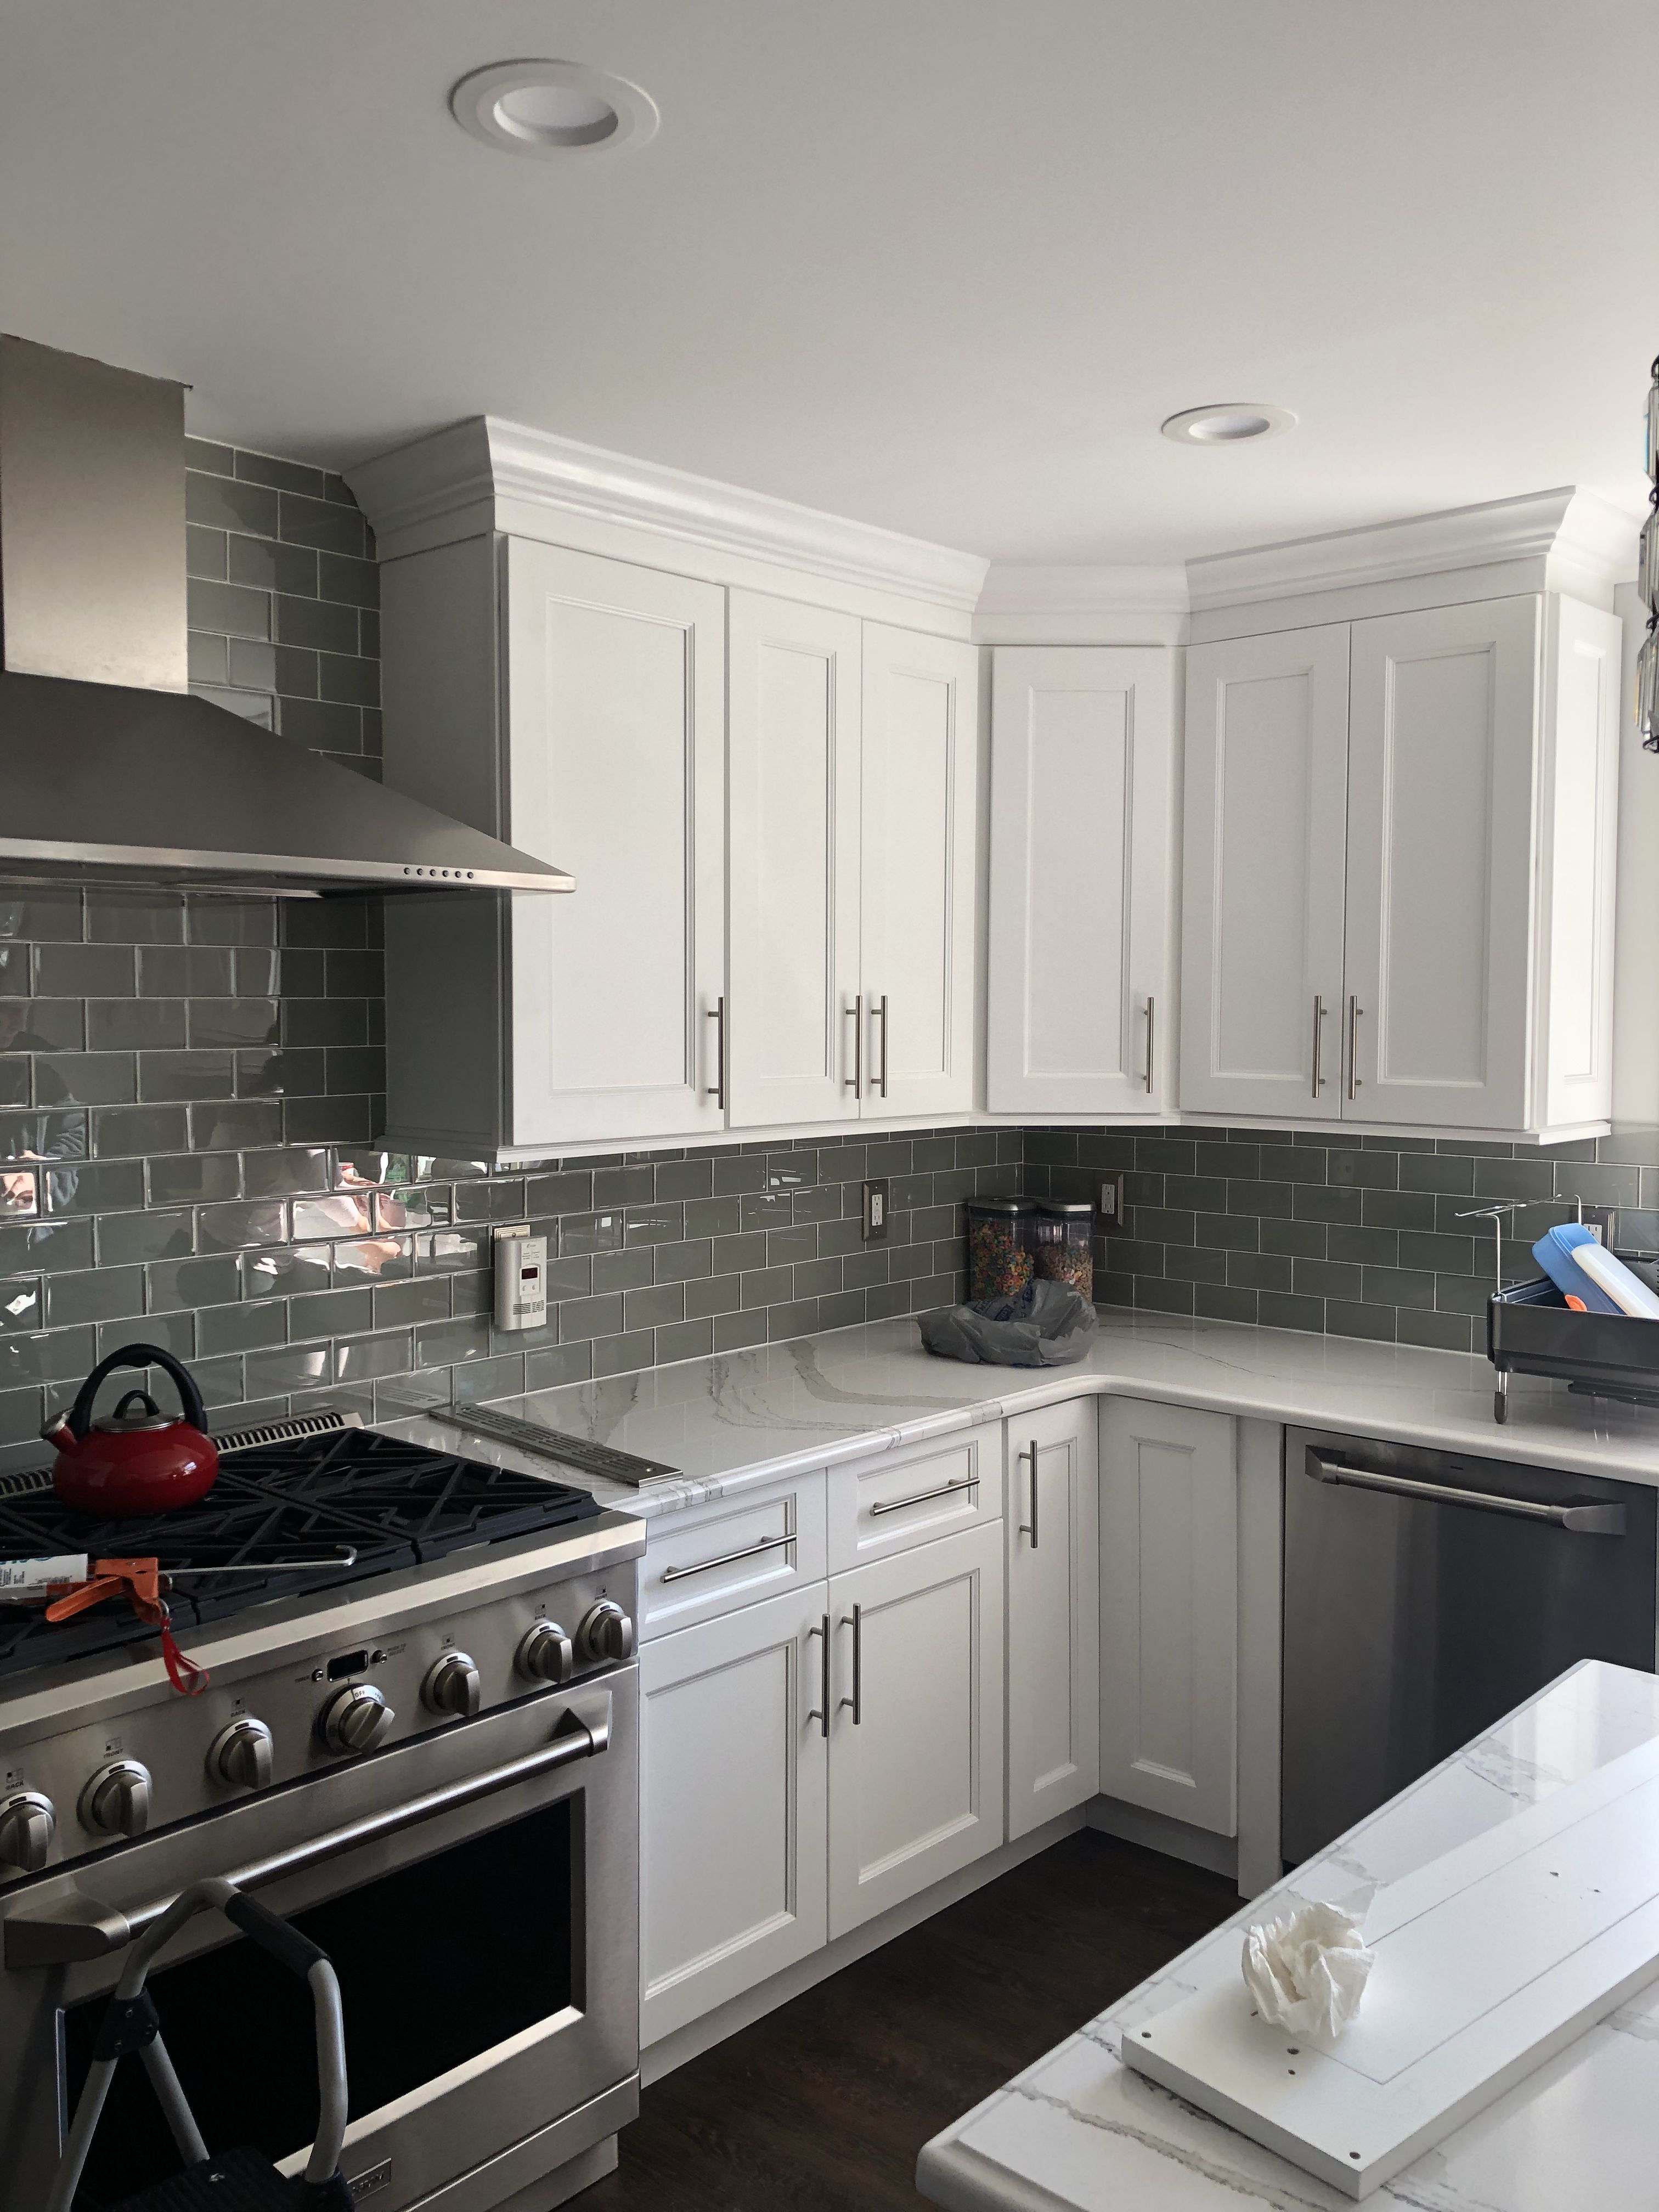 Pin By Bella On Home In 2020 Countertop Remodel Kitchen Cabinet Design Kitchen Redo